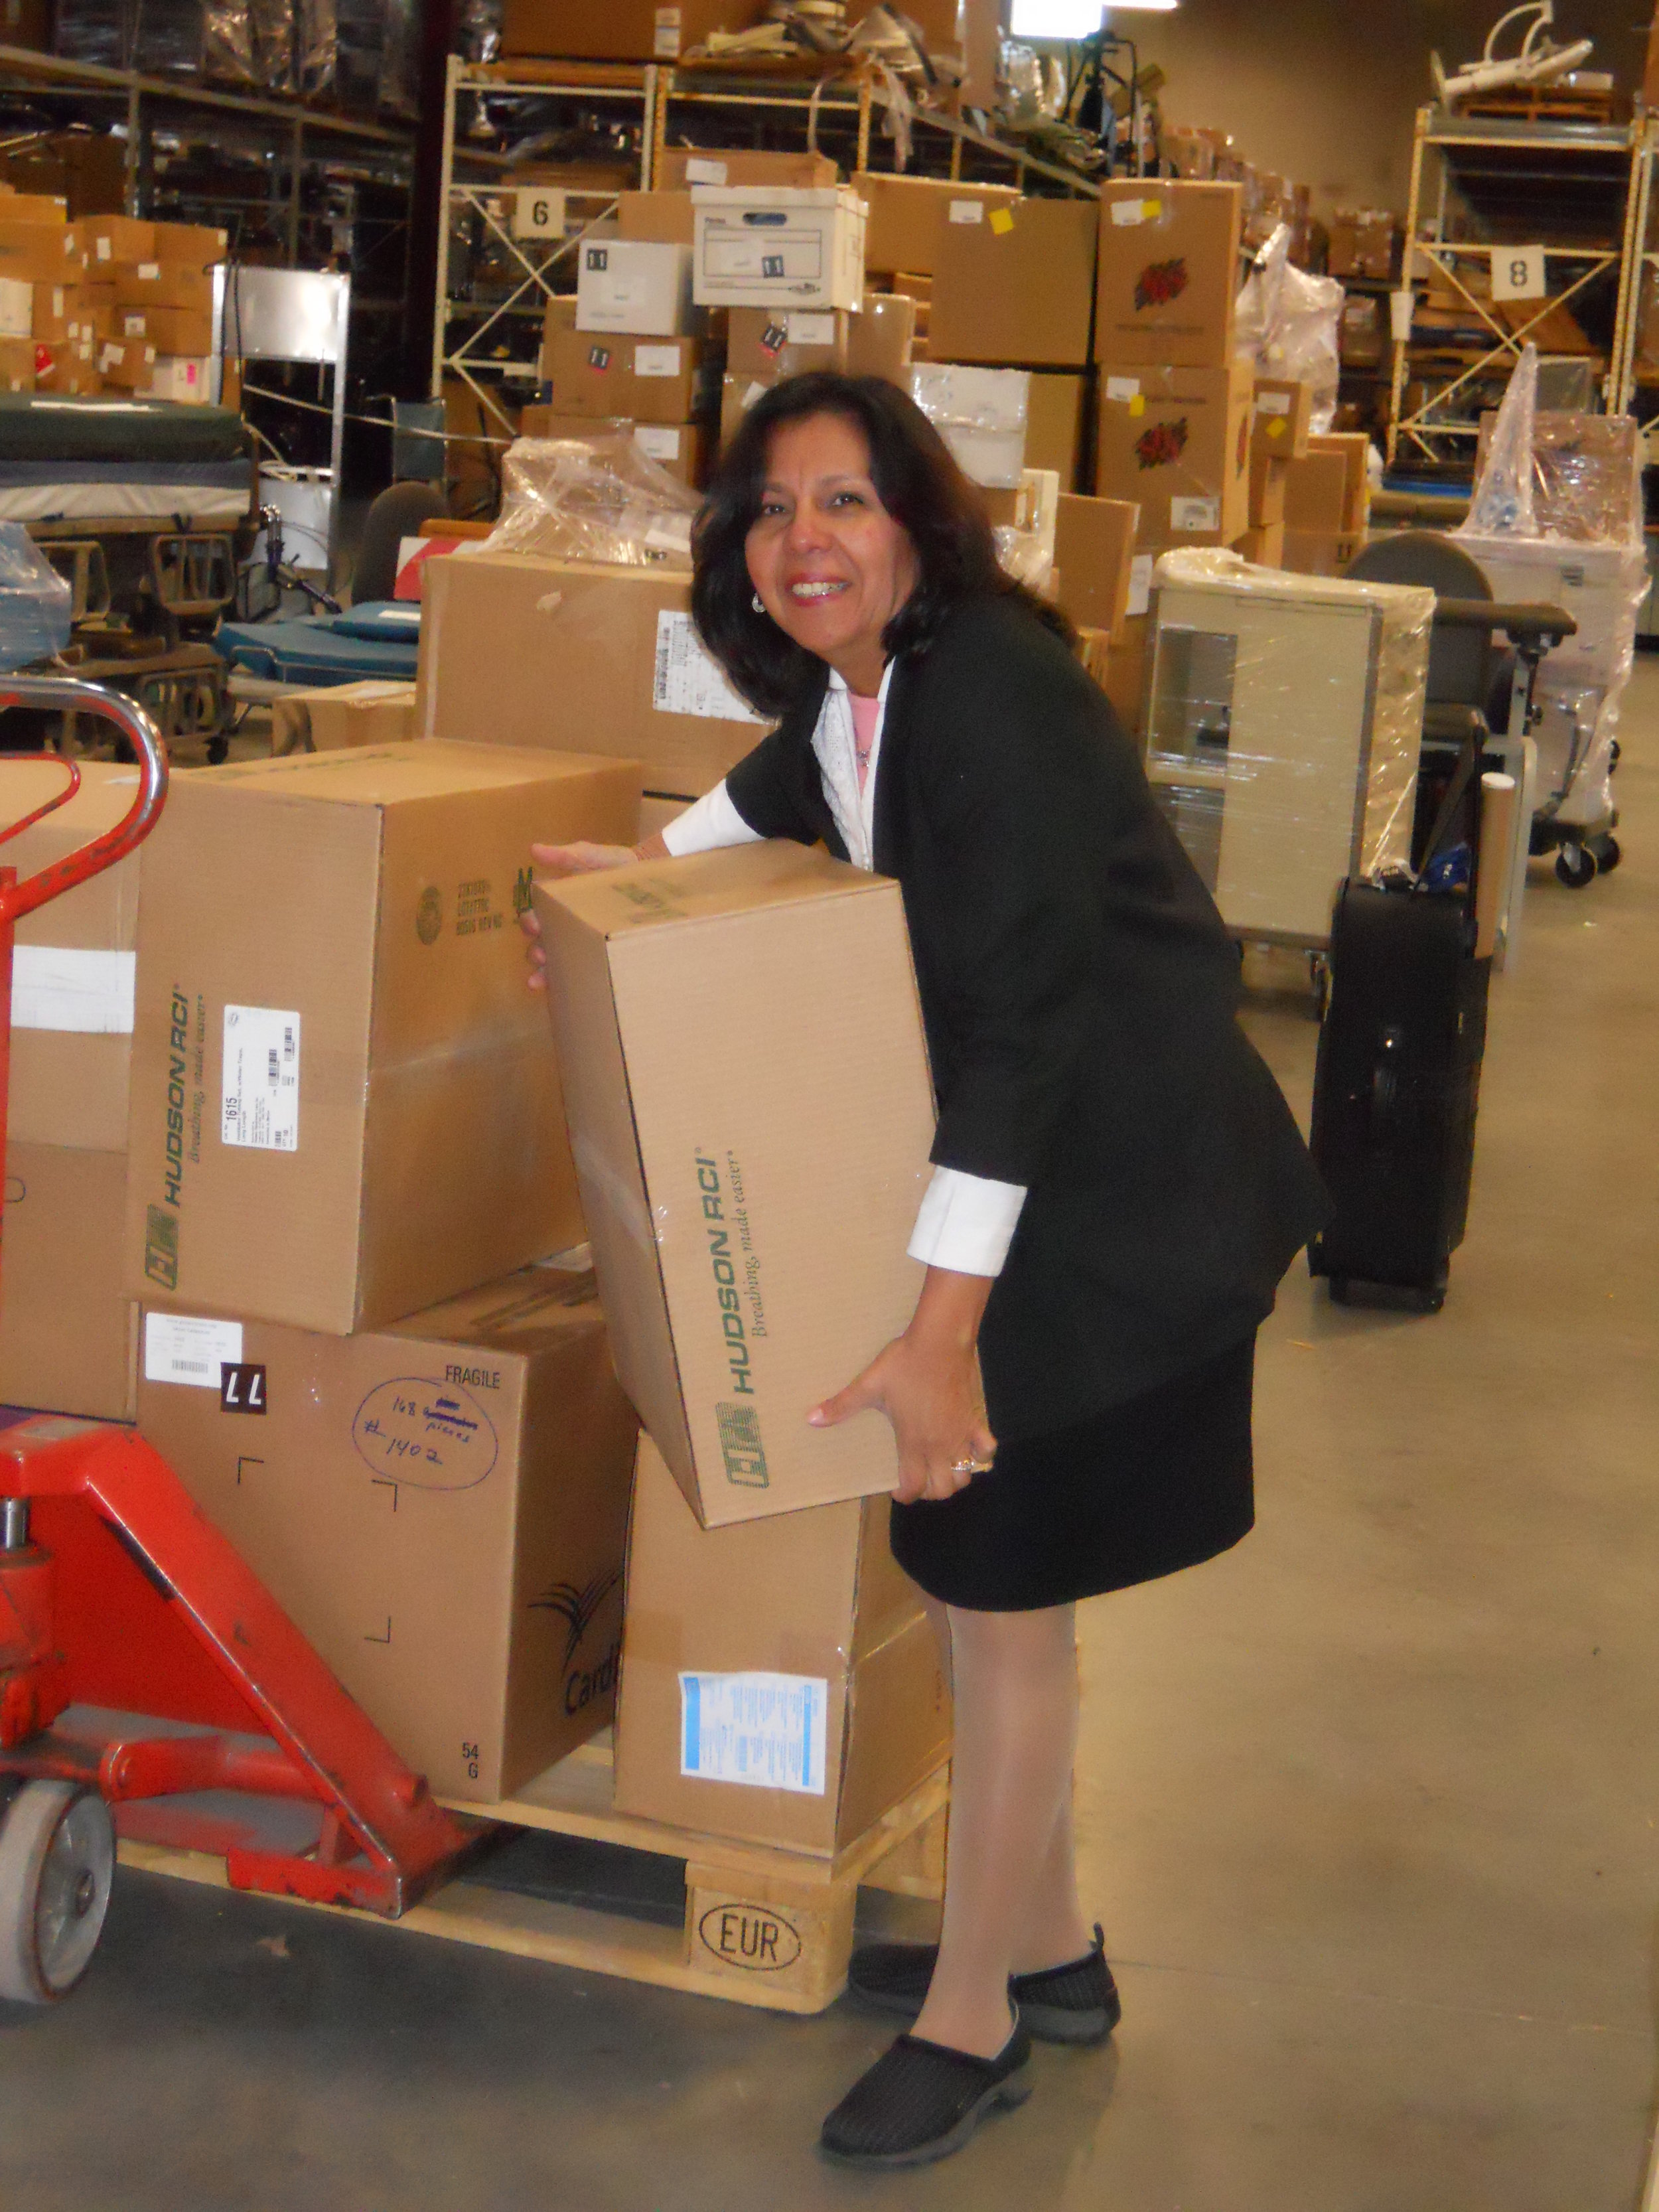 Felisa helping to load the container